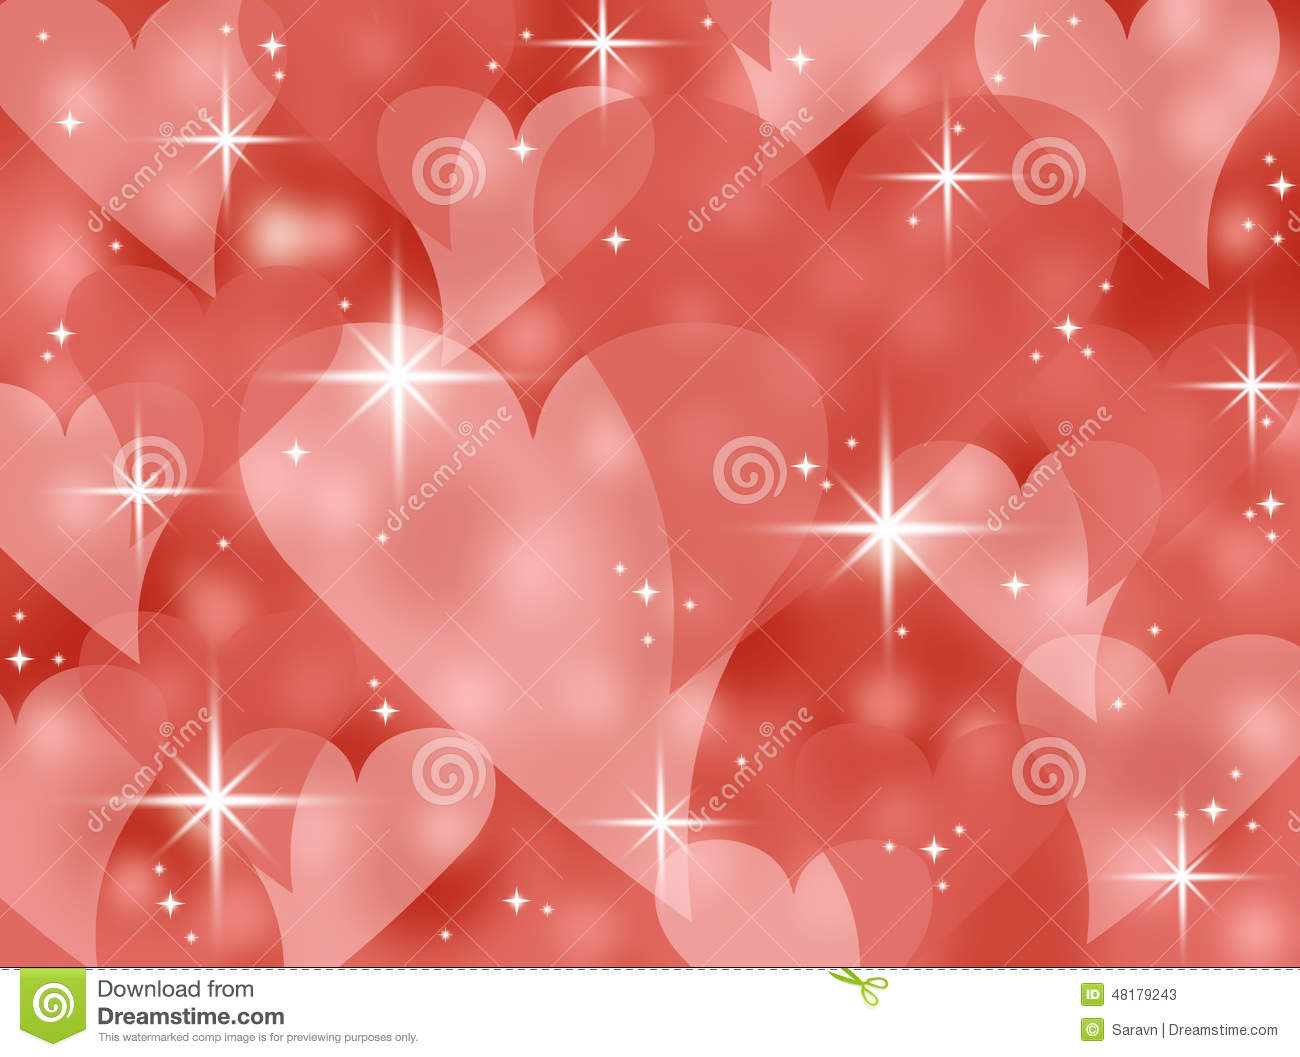 Red Abstract Bokeh Heart Valentines Day Card Background Illustration